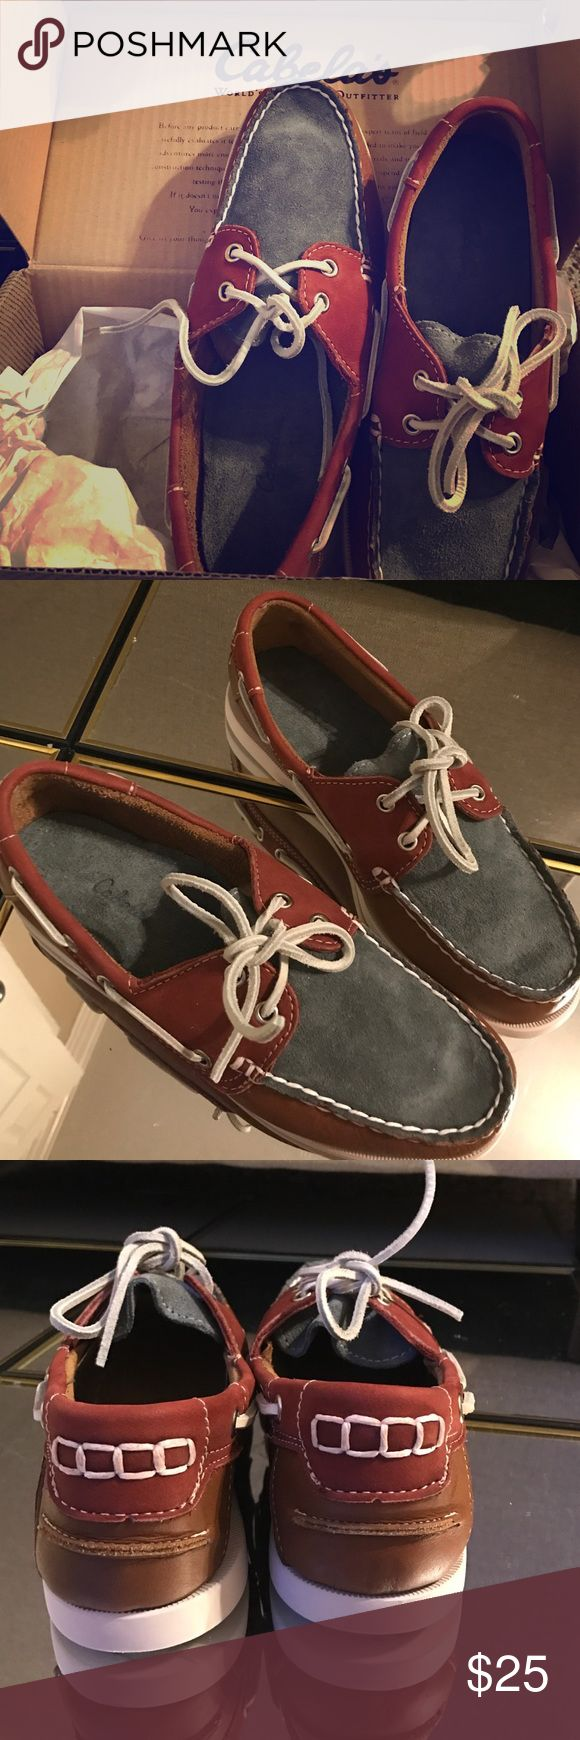 Cabelas maroon & blue leather boat shoes. Super cute boat shoes that I hate to say goodbye to - but they've gone unworn long enough I suppose! Cabela's Shoes Flats & Loafers